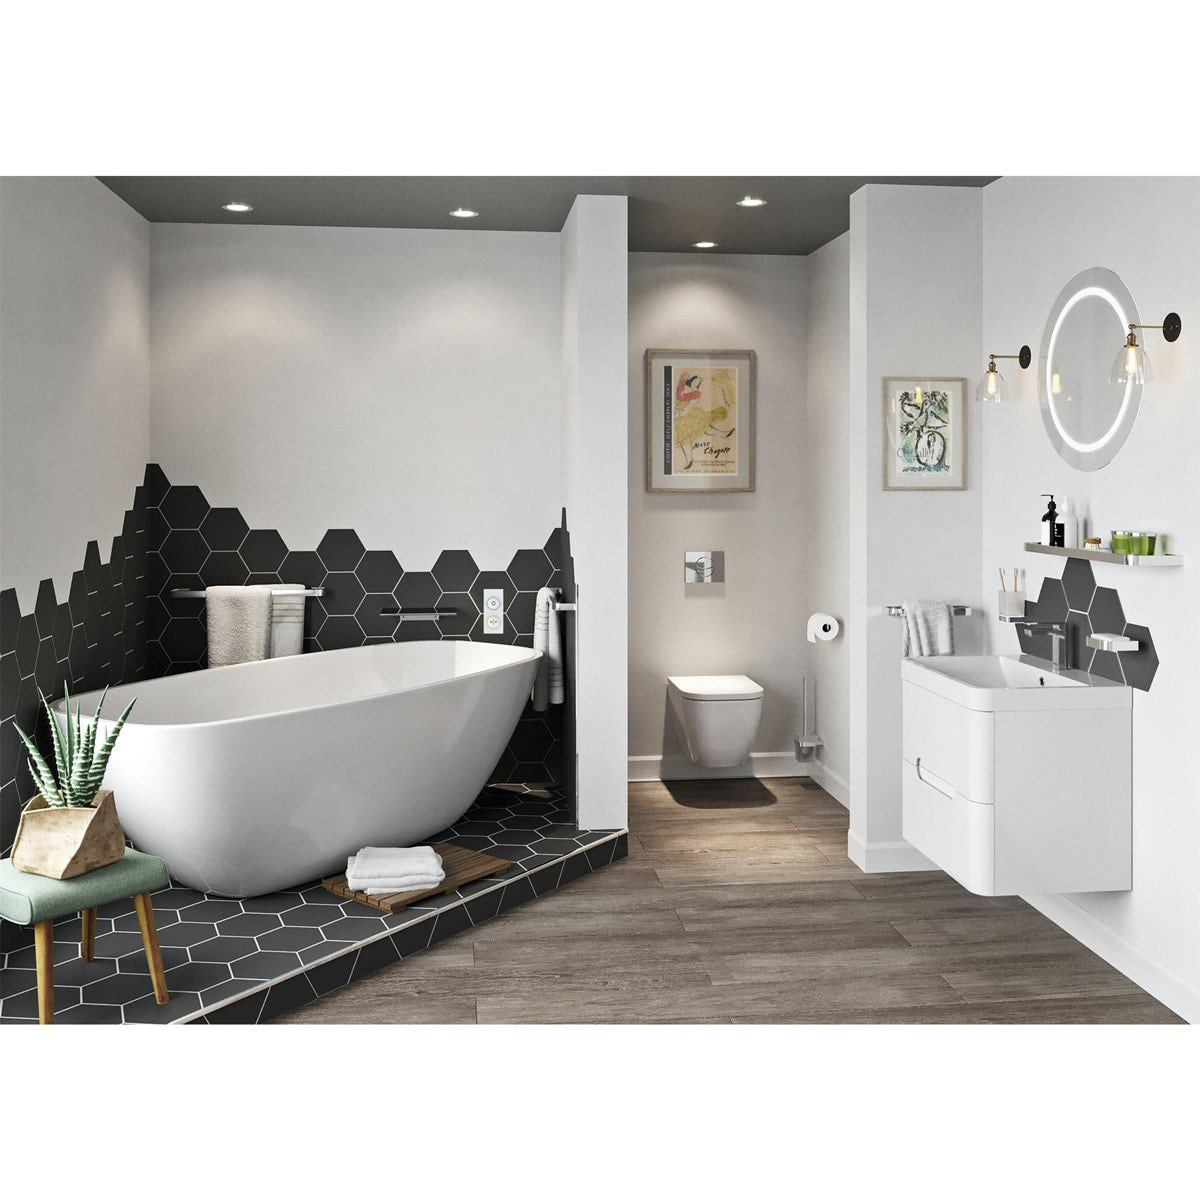 SmarTap & Mode Ellis complete suite with freestanding bath with smart fill, taps and wastes